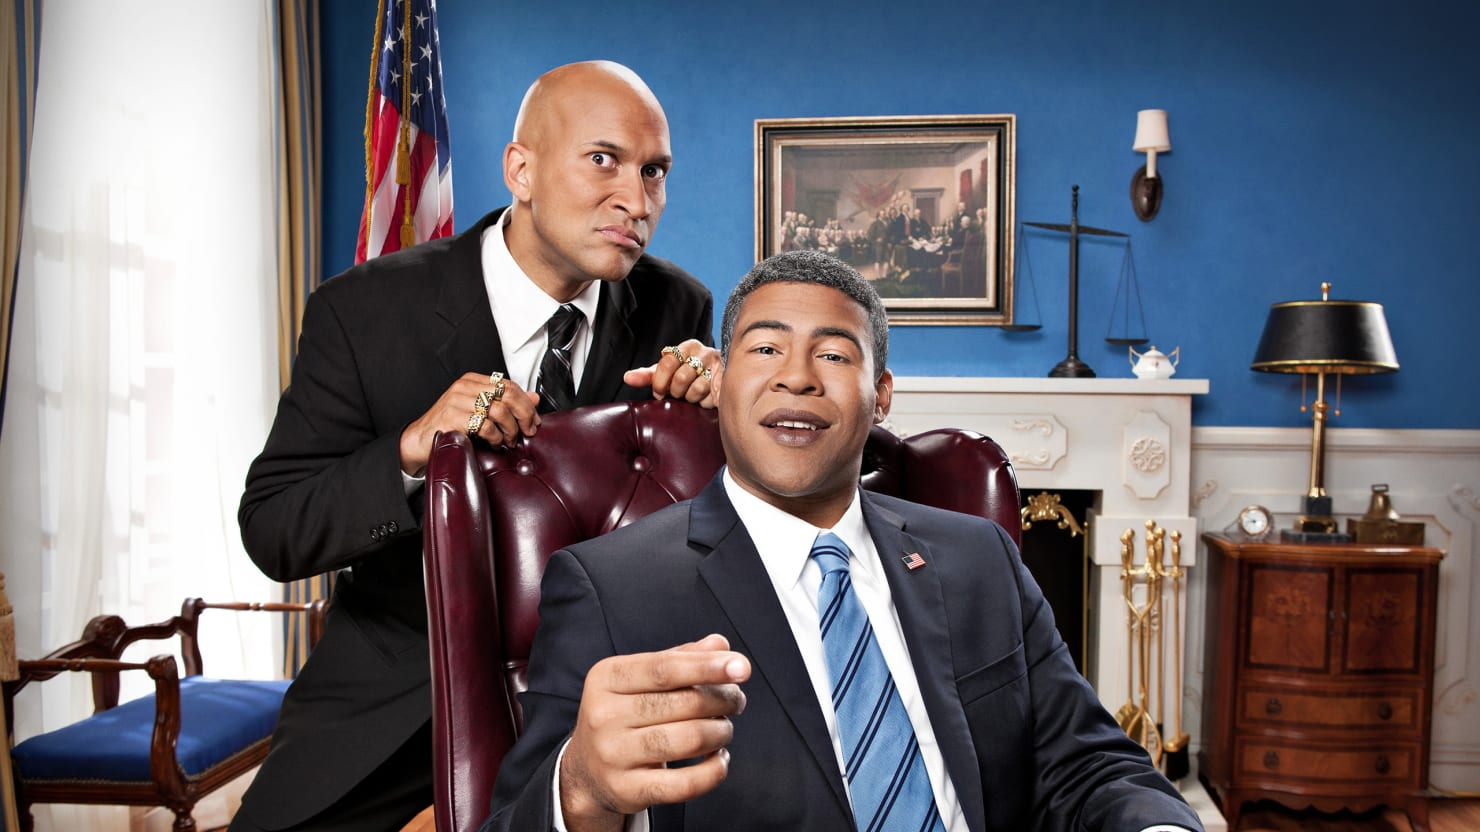 are key and peele biracial geniuses or are they just really funny?